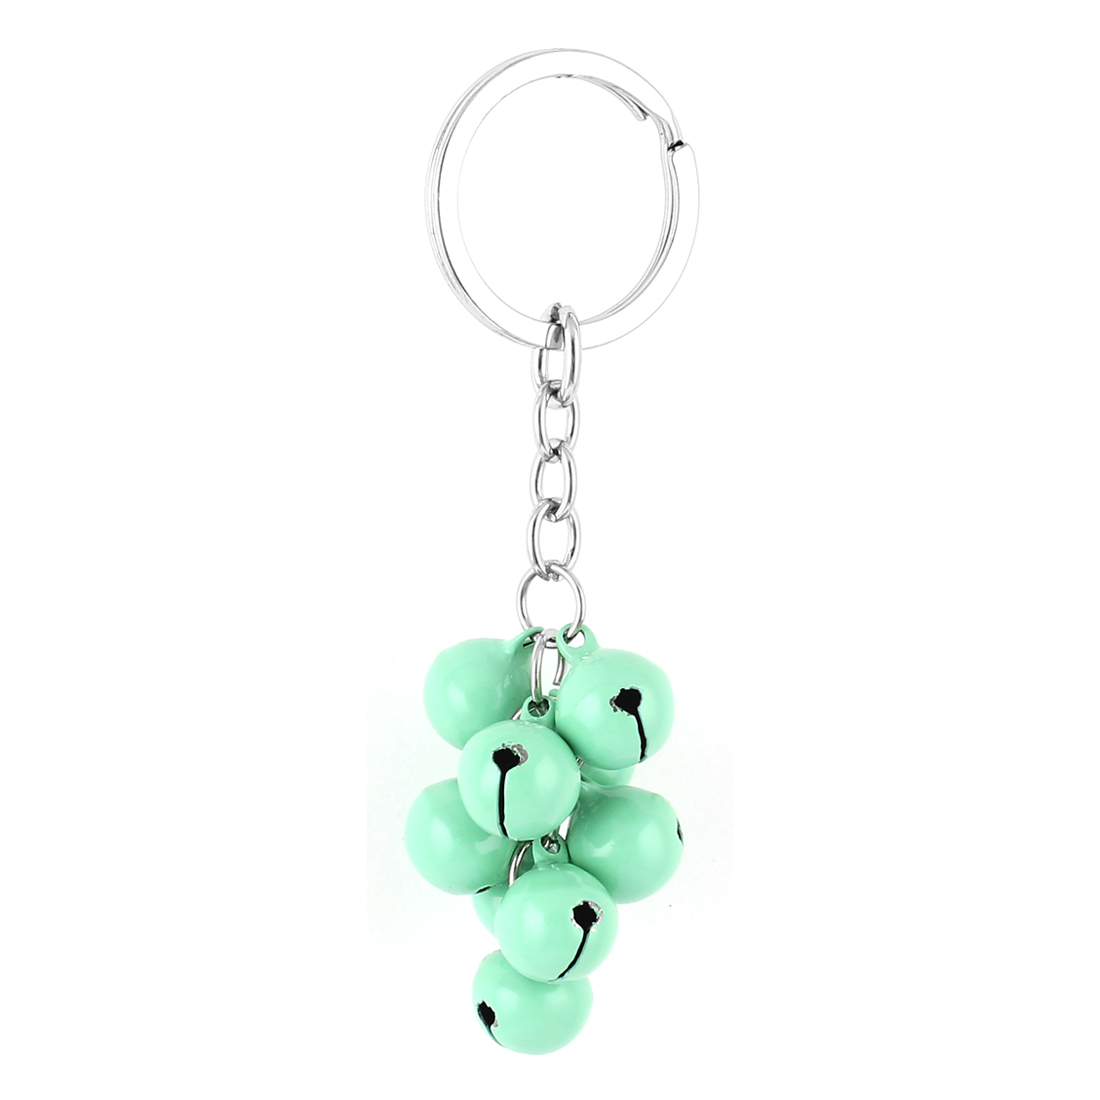 Green Metal Bells Pendant Keyring Keychain Key Chain Carrier Purse Bag Decoration Gift